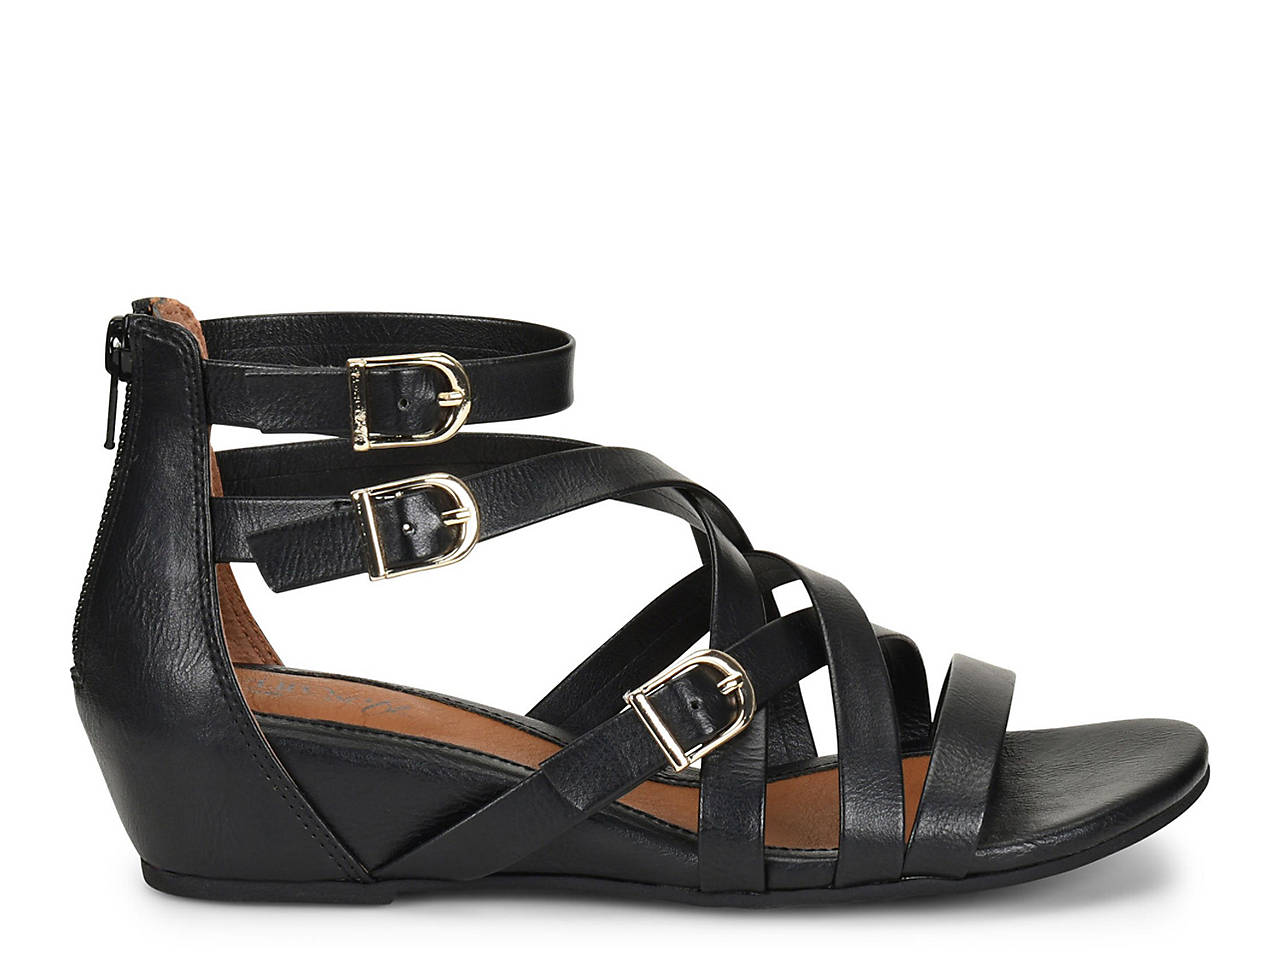 9626a584abed Eurosoft Rory Wedge Sandal Women s Shoes